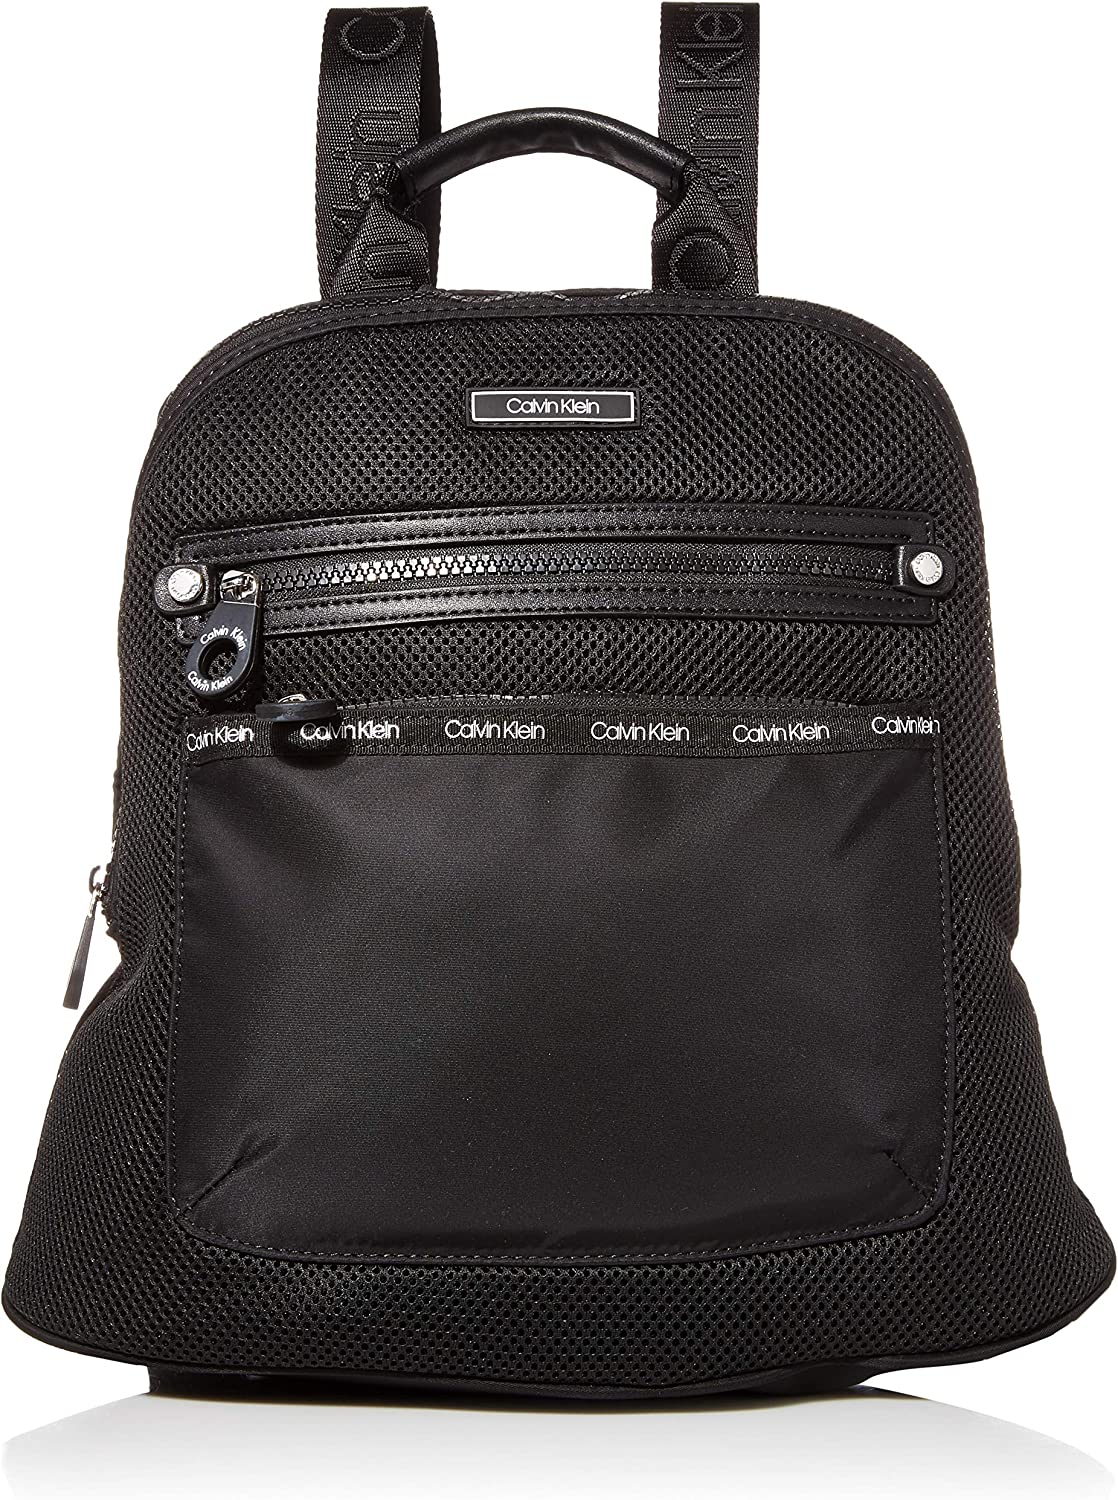 Calvin Klein Georgina Nylon Organizational Backpack